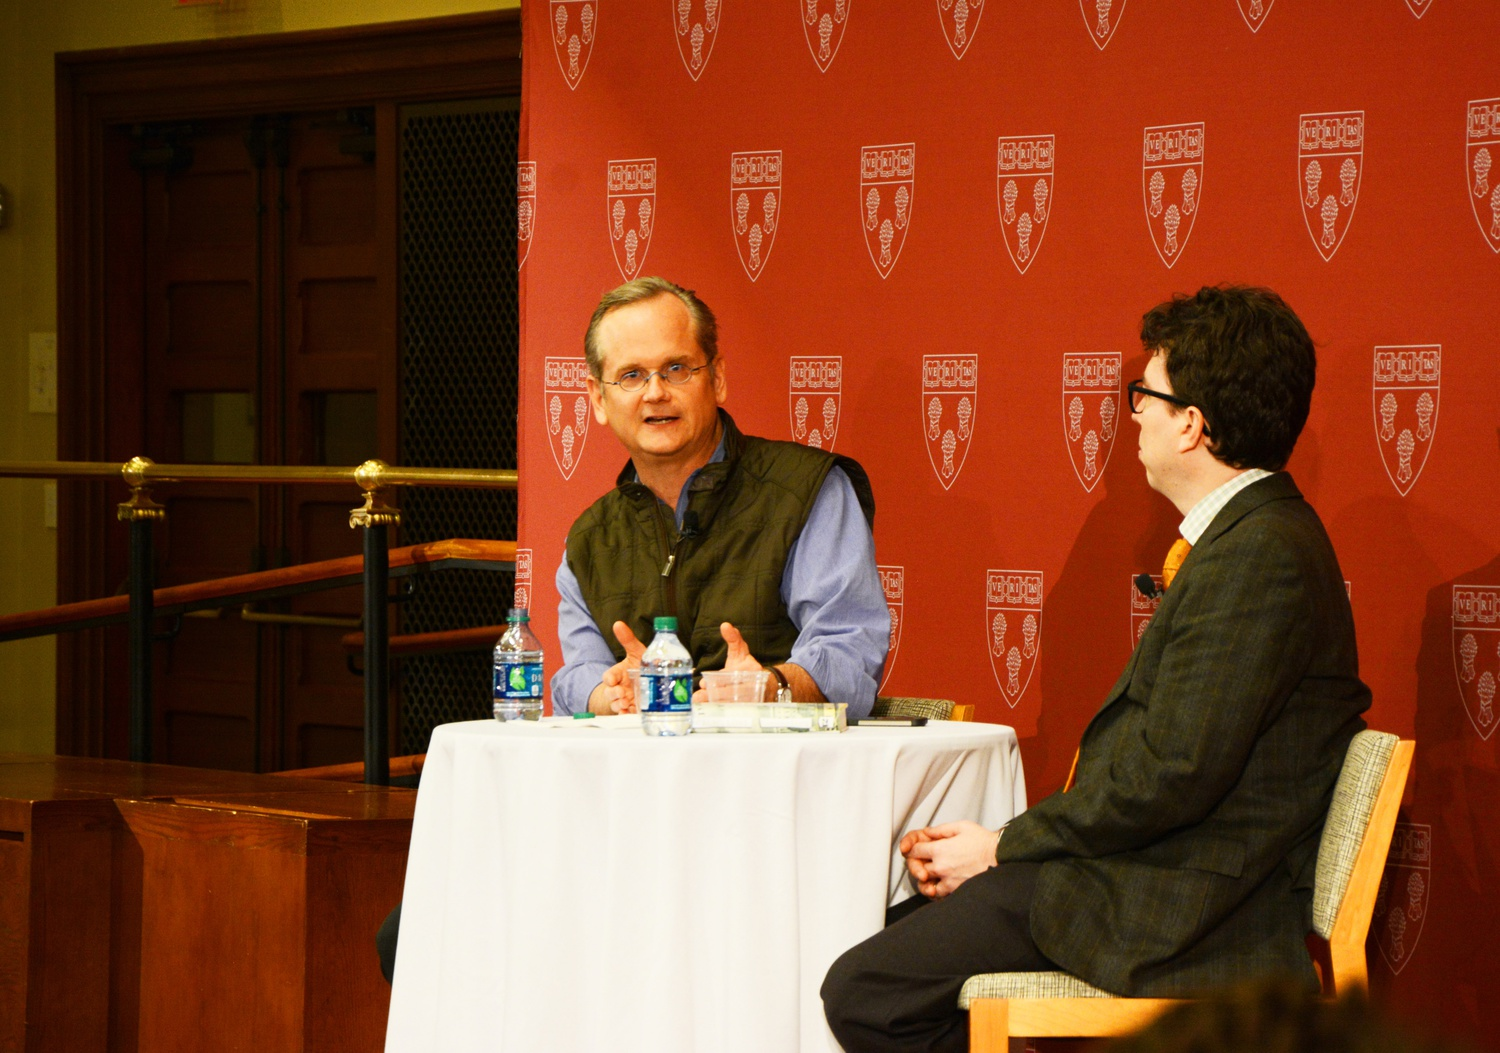 Law School professor Lawrence Lessig, left, and Law professor Jonathan Zittrain discuss what Lessig learned from his presidential candidacy at Harvard Law School in 2015.